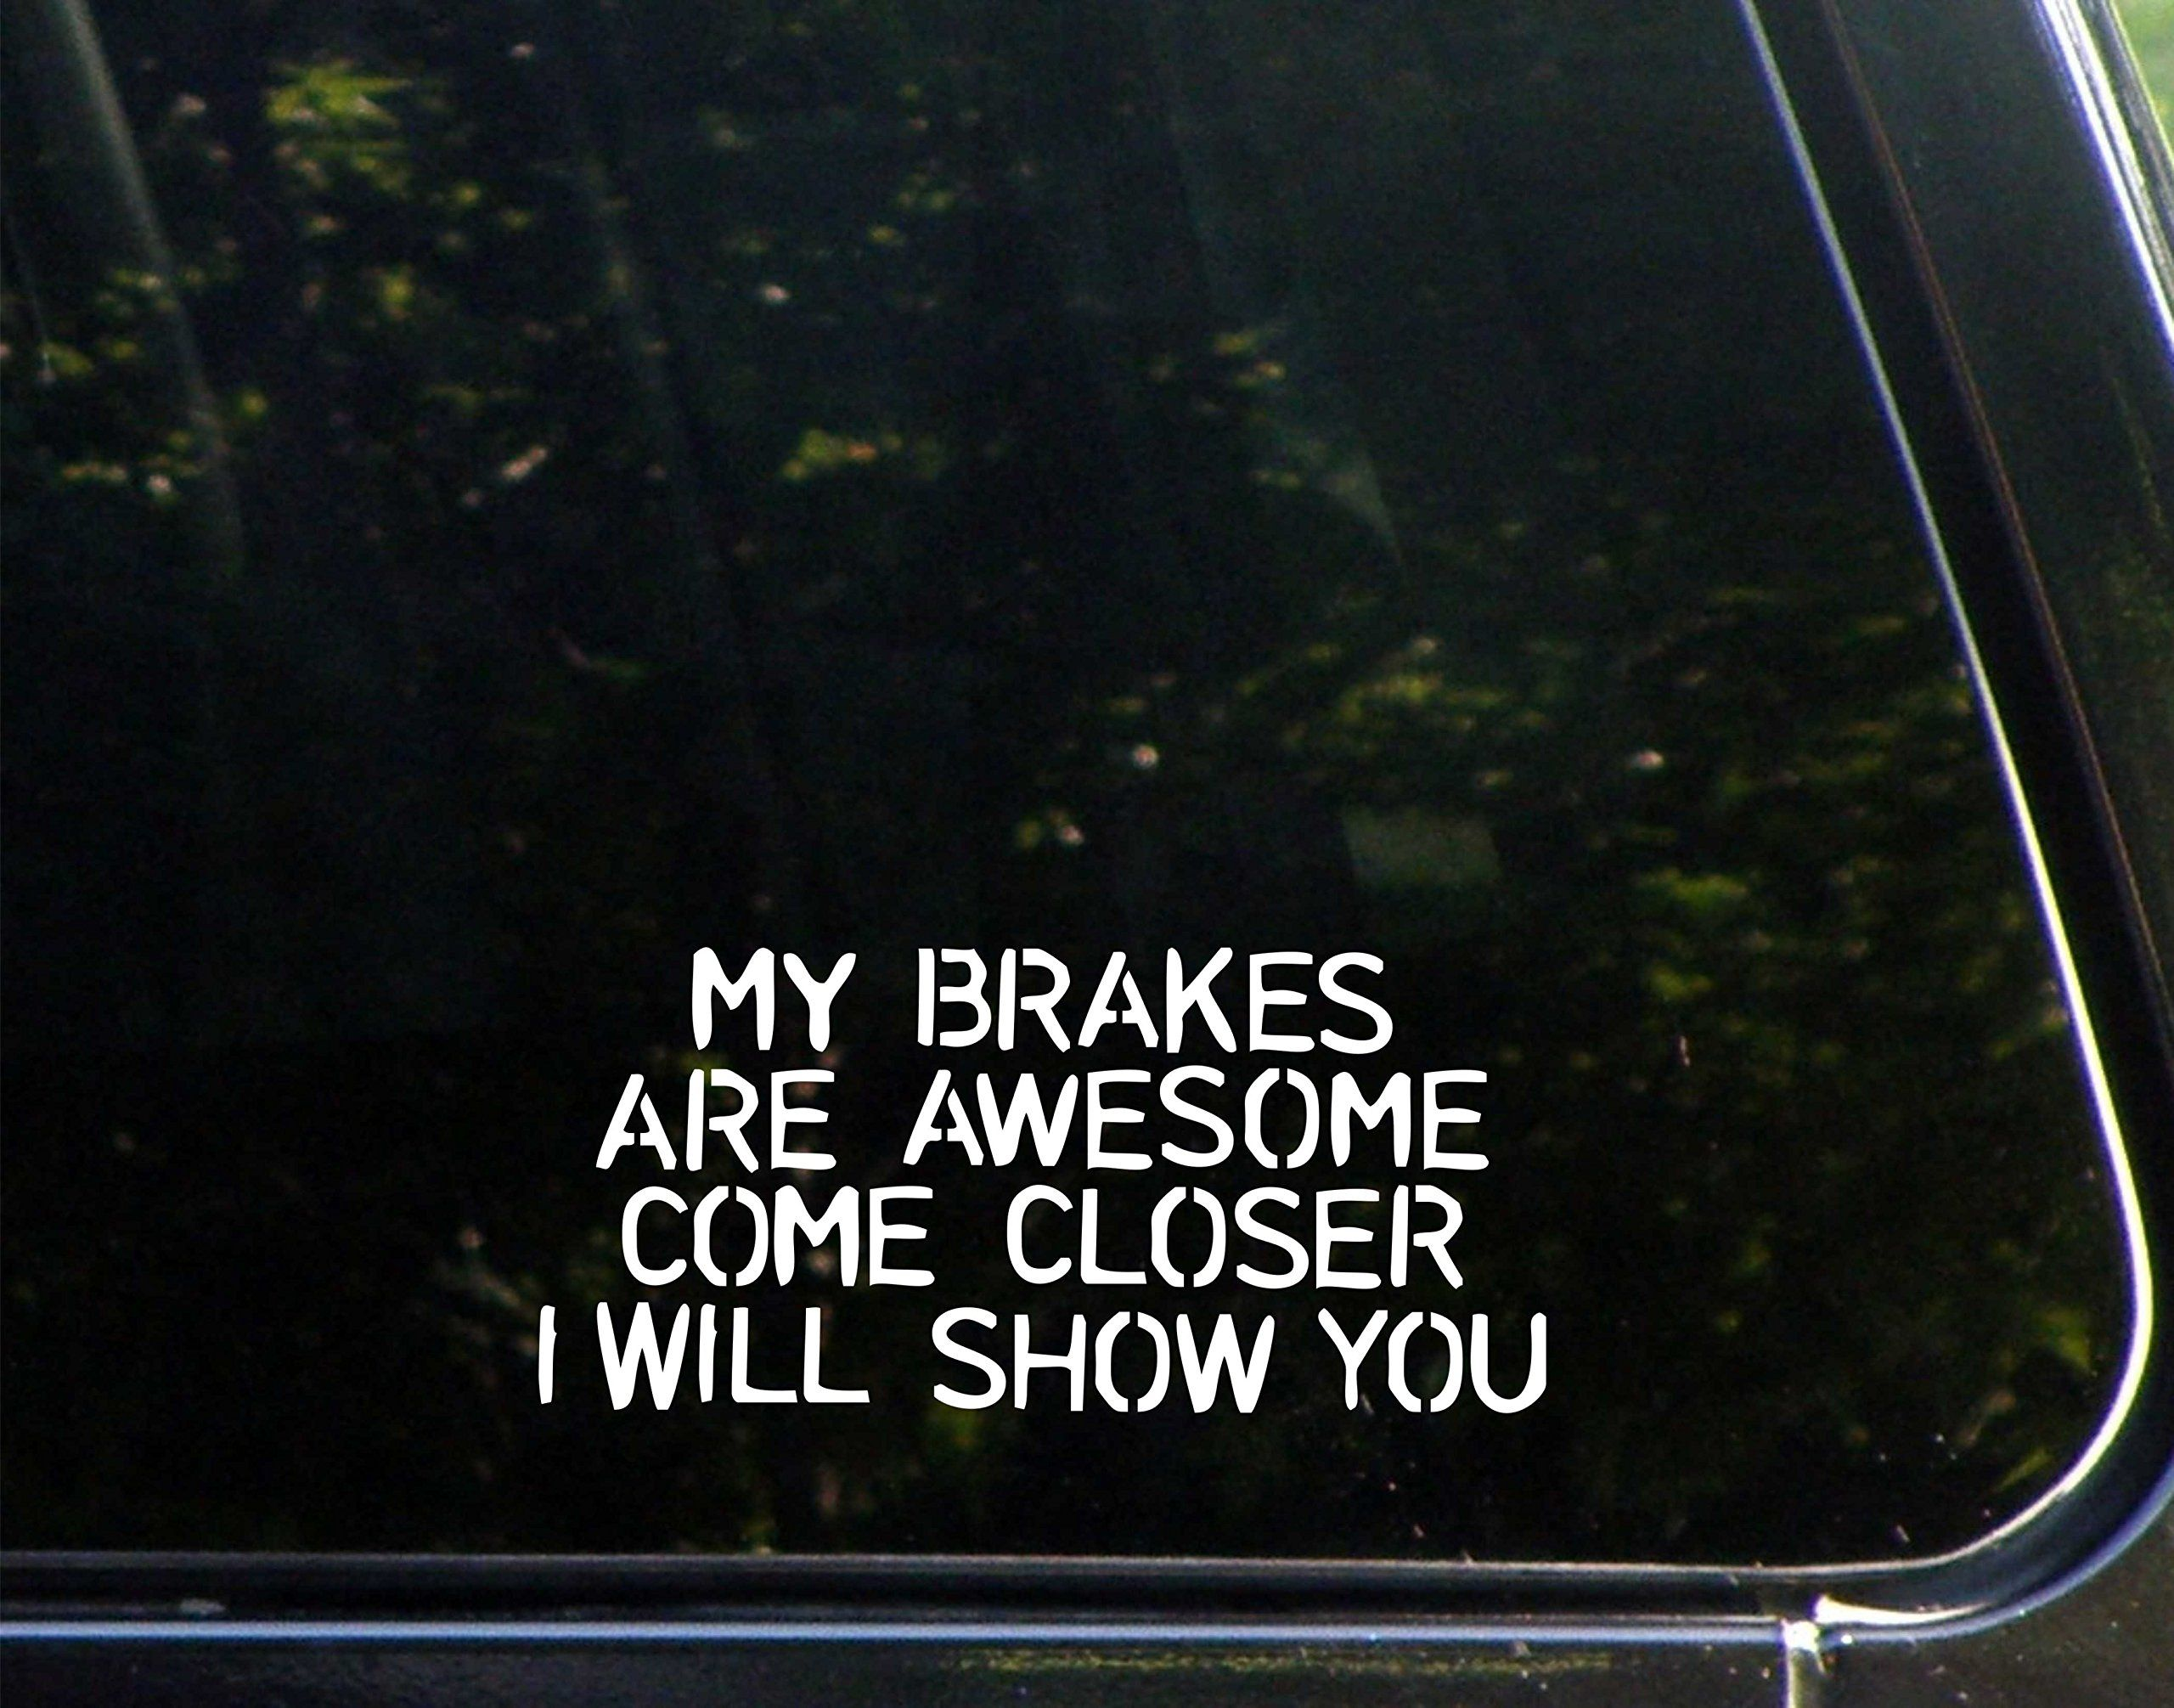 My brakes are awesome come closer i will show you 6 1 2 x 3 funny die cut